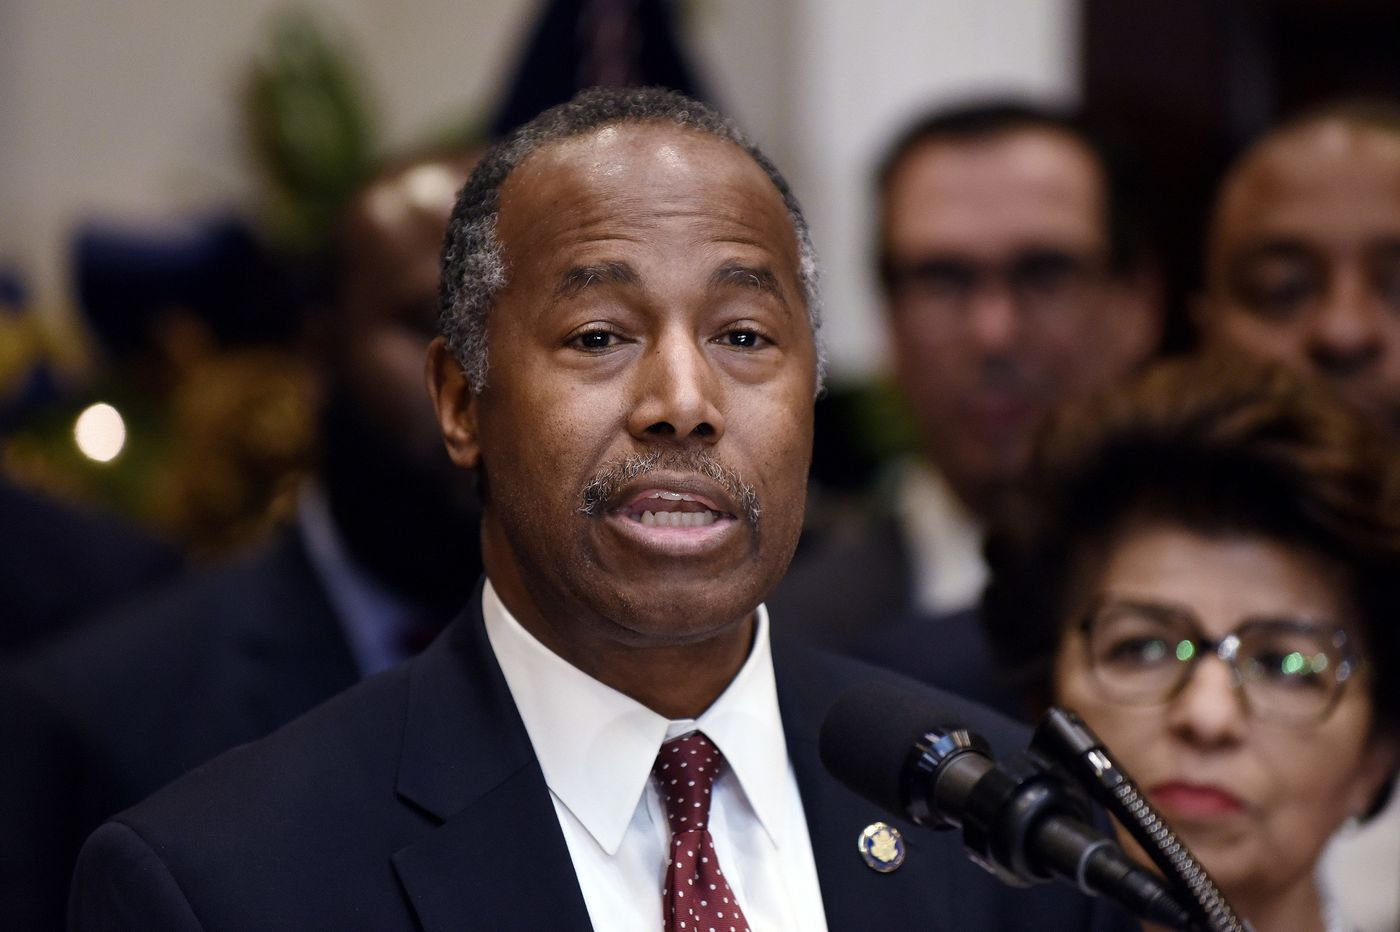 Ben Carson misheard a housing term as 'Oreo,' and other tense moments